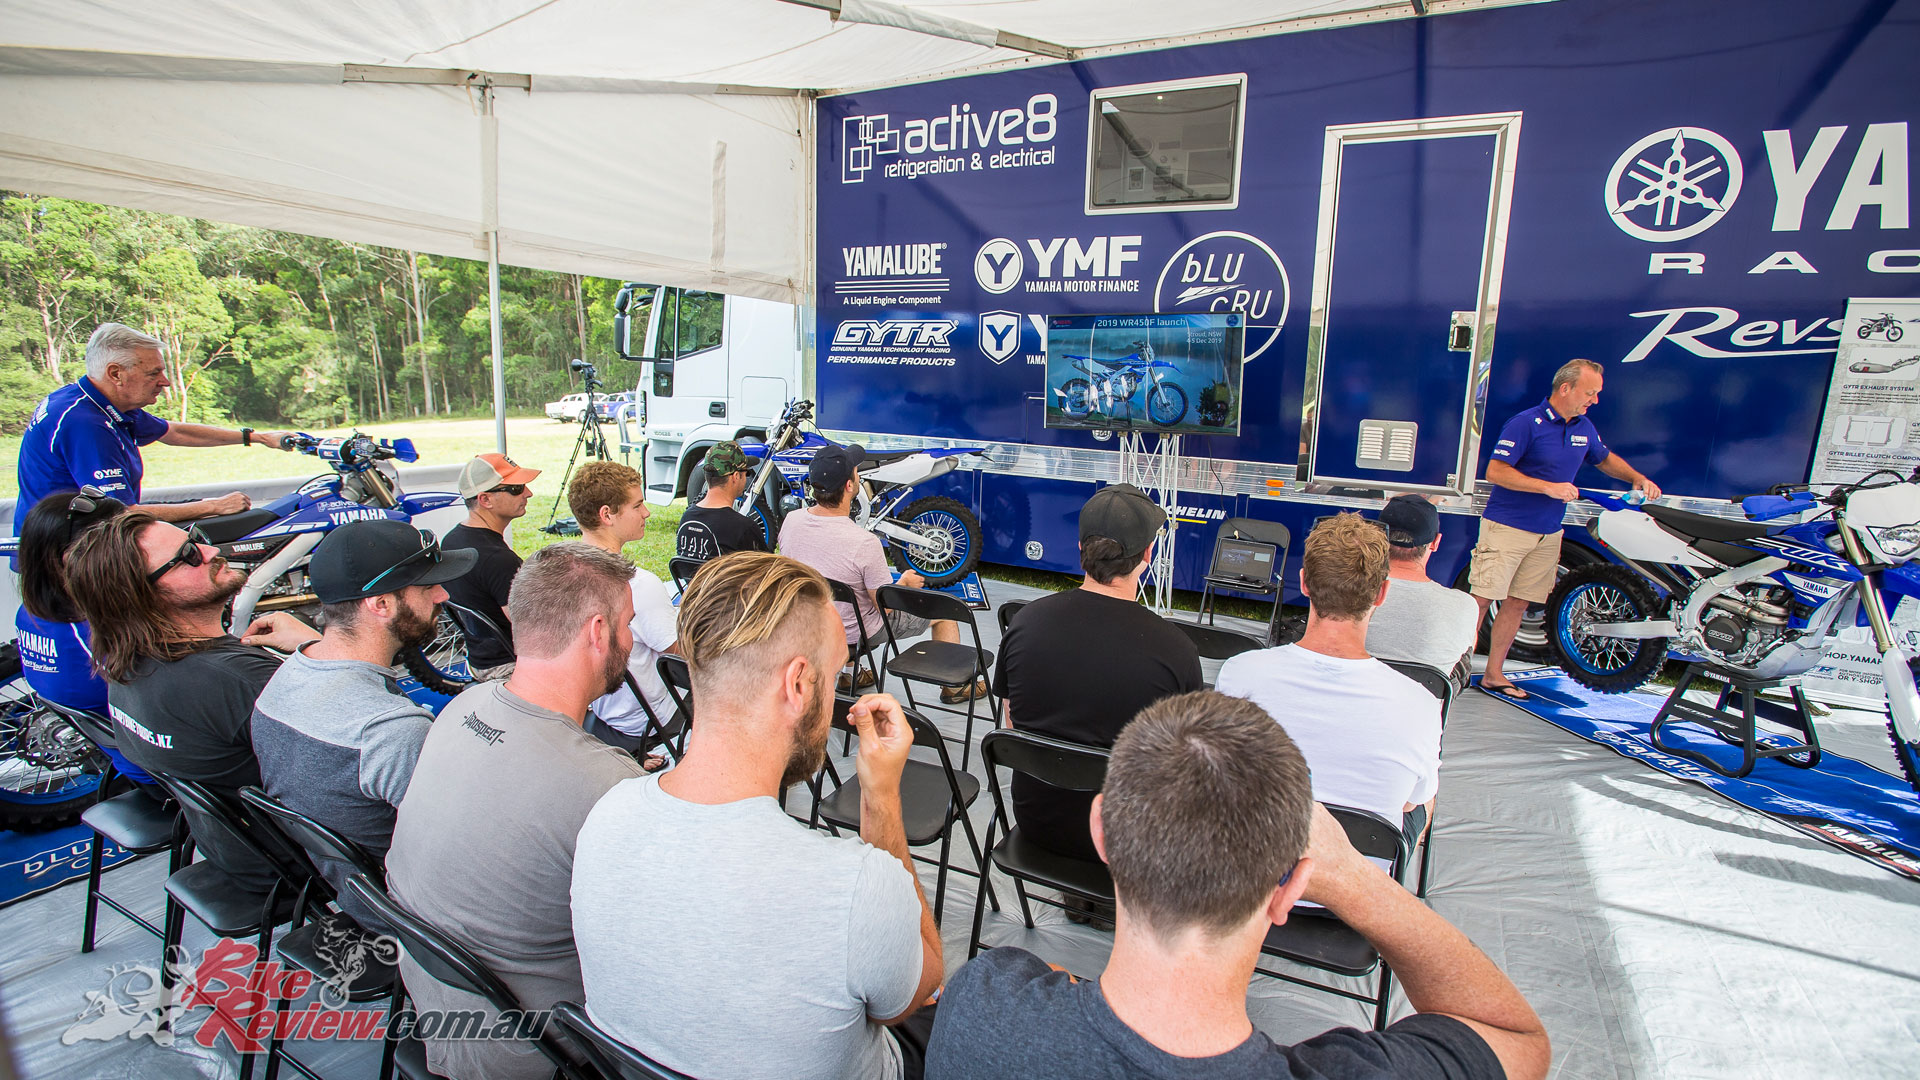 2019 Yamaha WR450F Launch - Yamaha Marketing Manager Sean Goldhawk introducing the new model